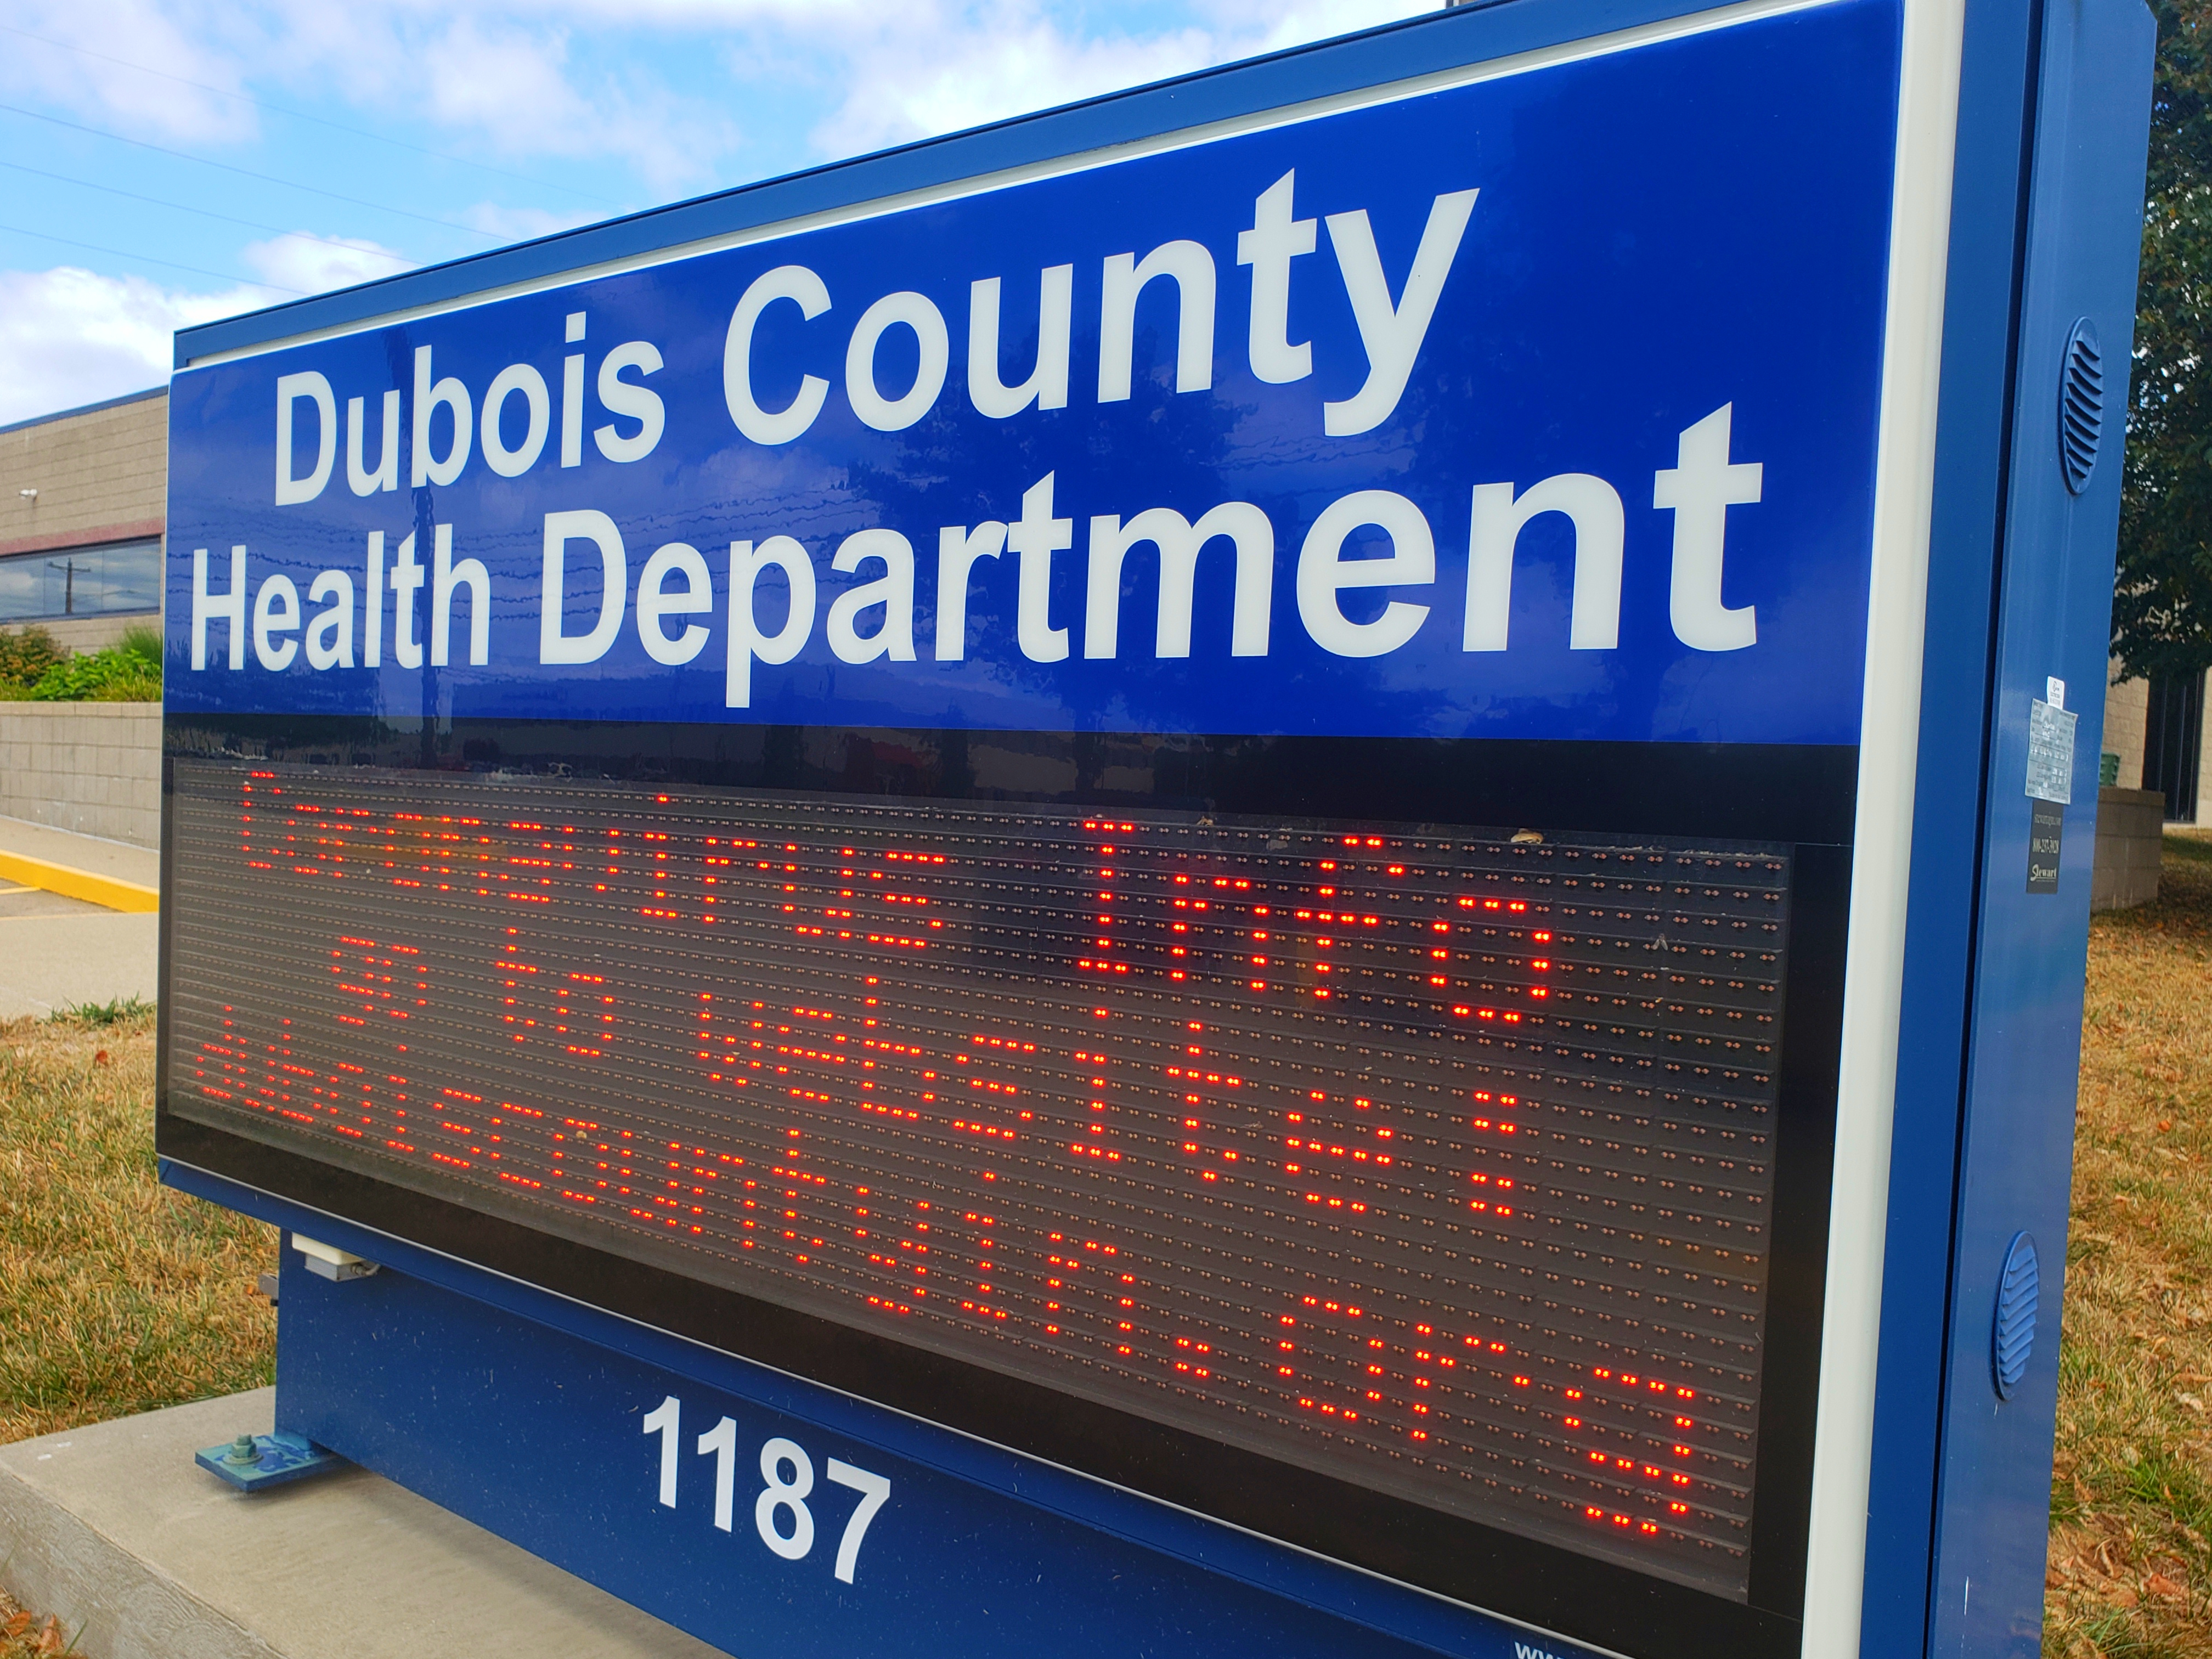 10 New Cases of COVID-19 Reported Thursday Afternoon in Dubois County